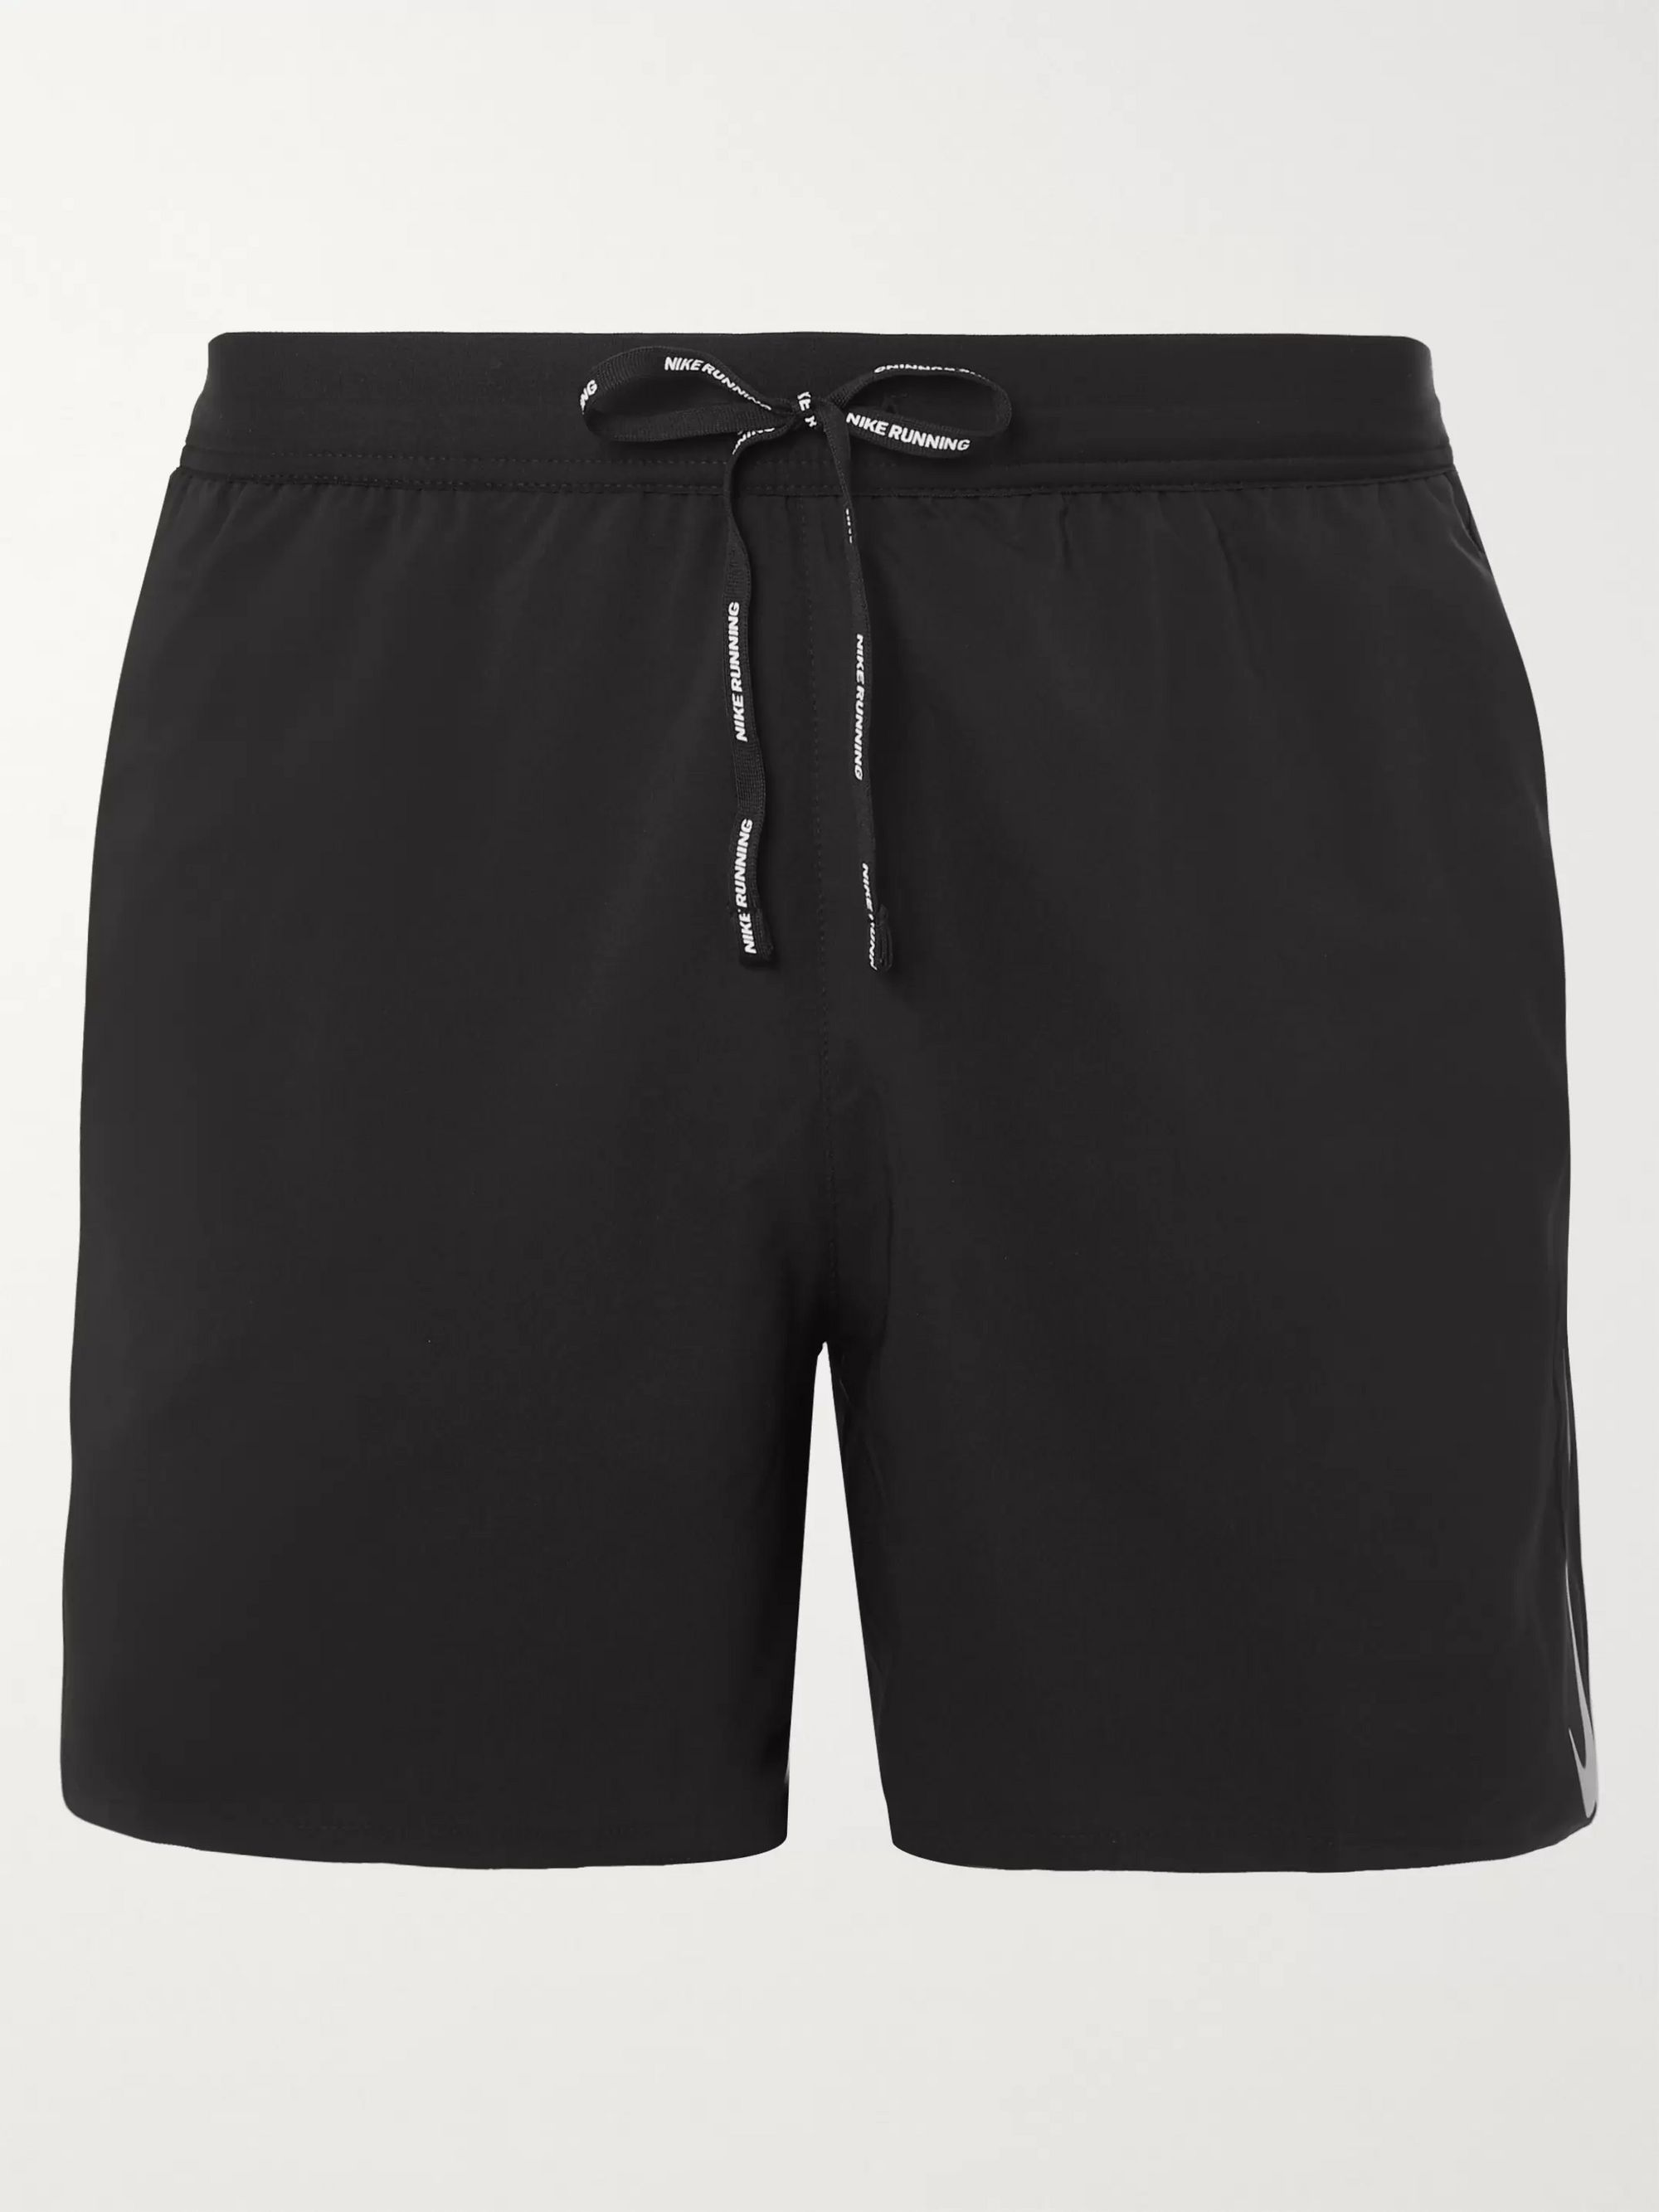 Nike Running Flex Stride Dri-FIT Shorts